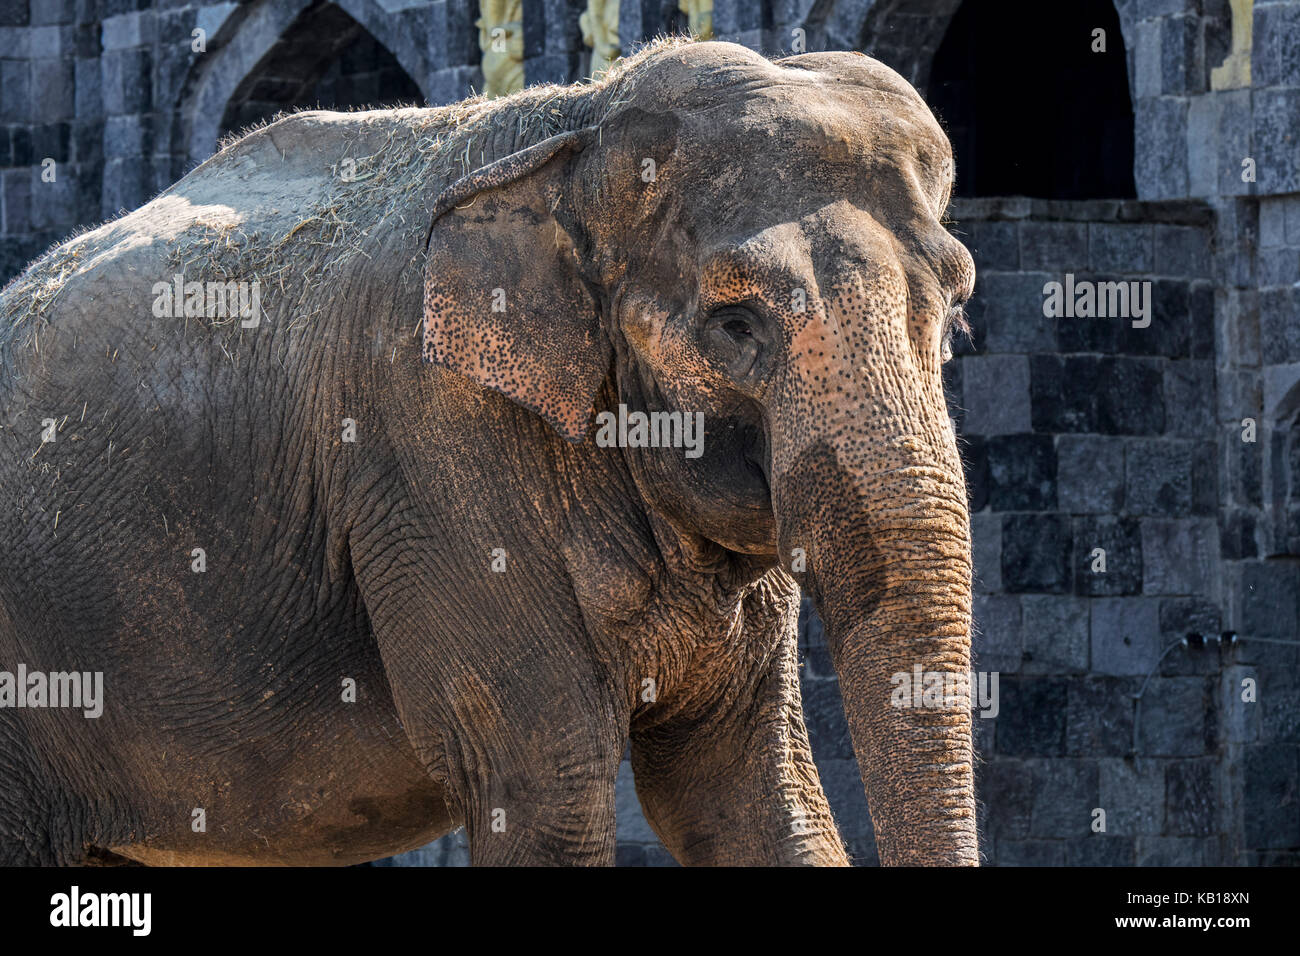 Depigmented Skin On The Forehead And Ears Of Asian Elephant